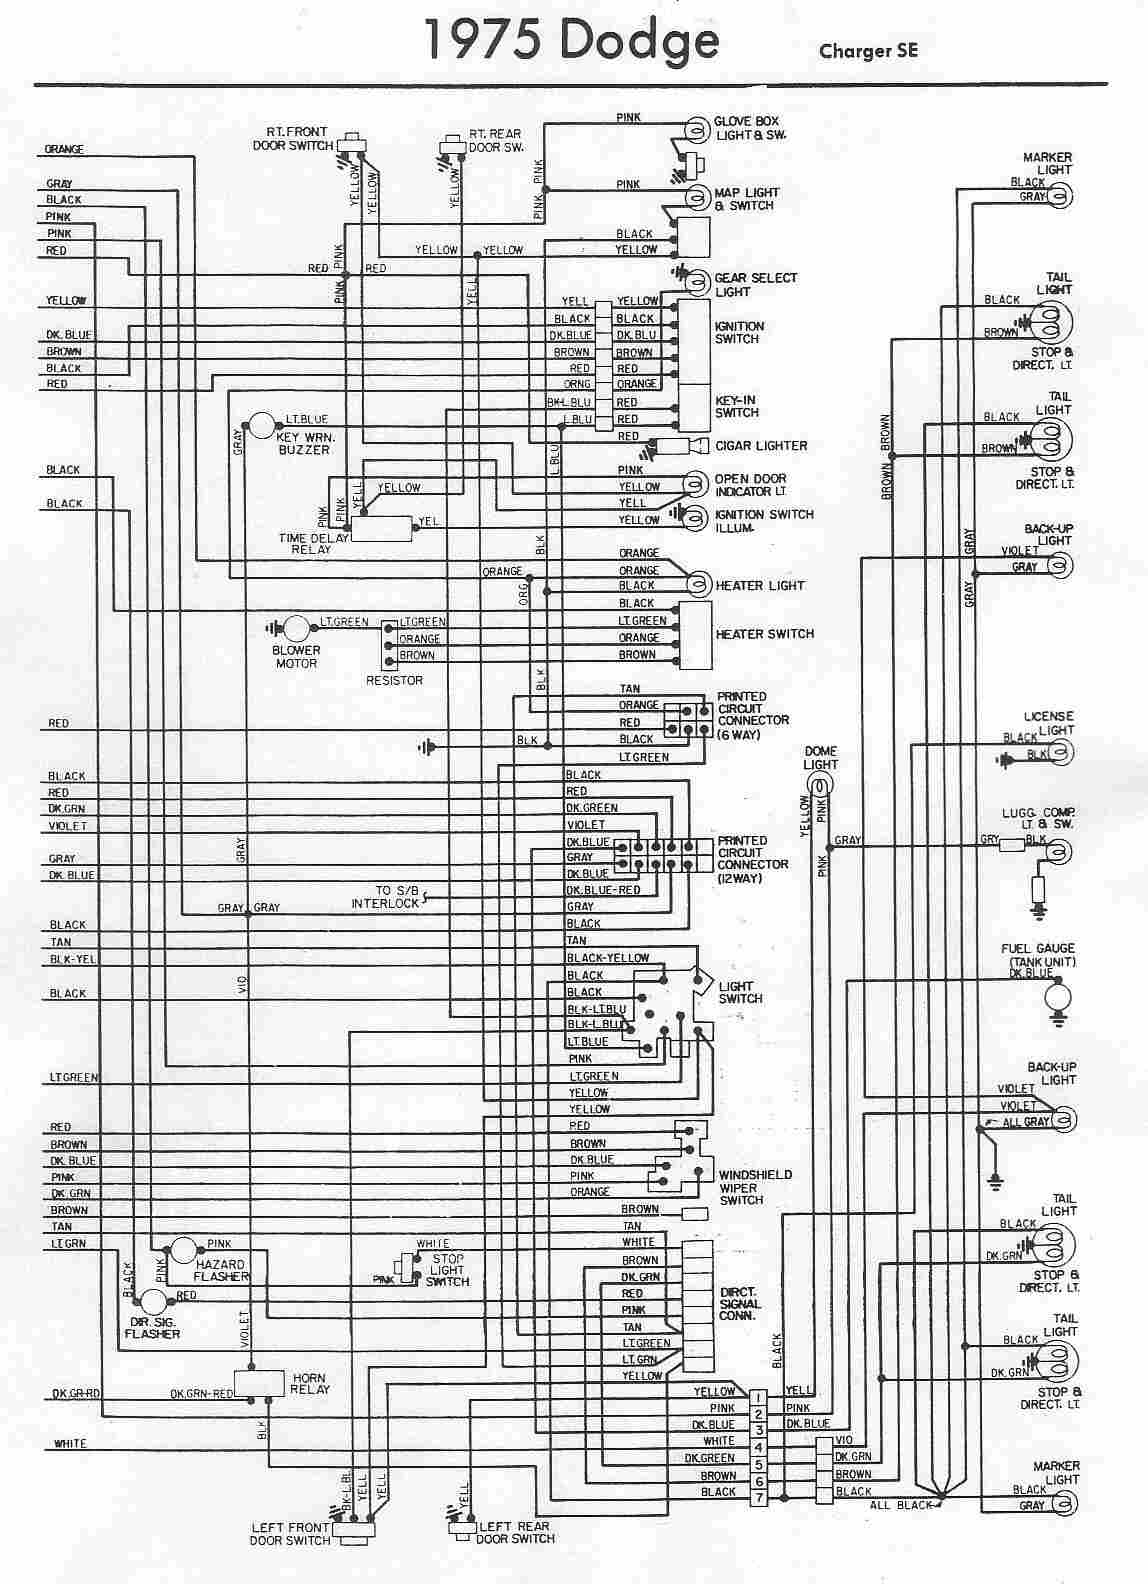 1956 dodge truck wiring diagrams manual e book 1975  [ 1148 x 1584 Pixel ]